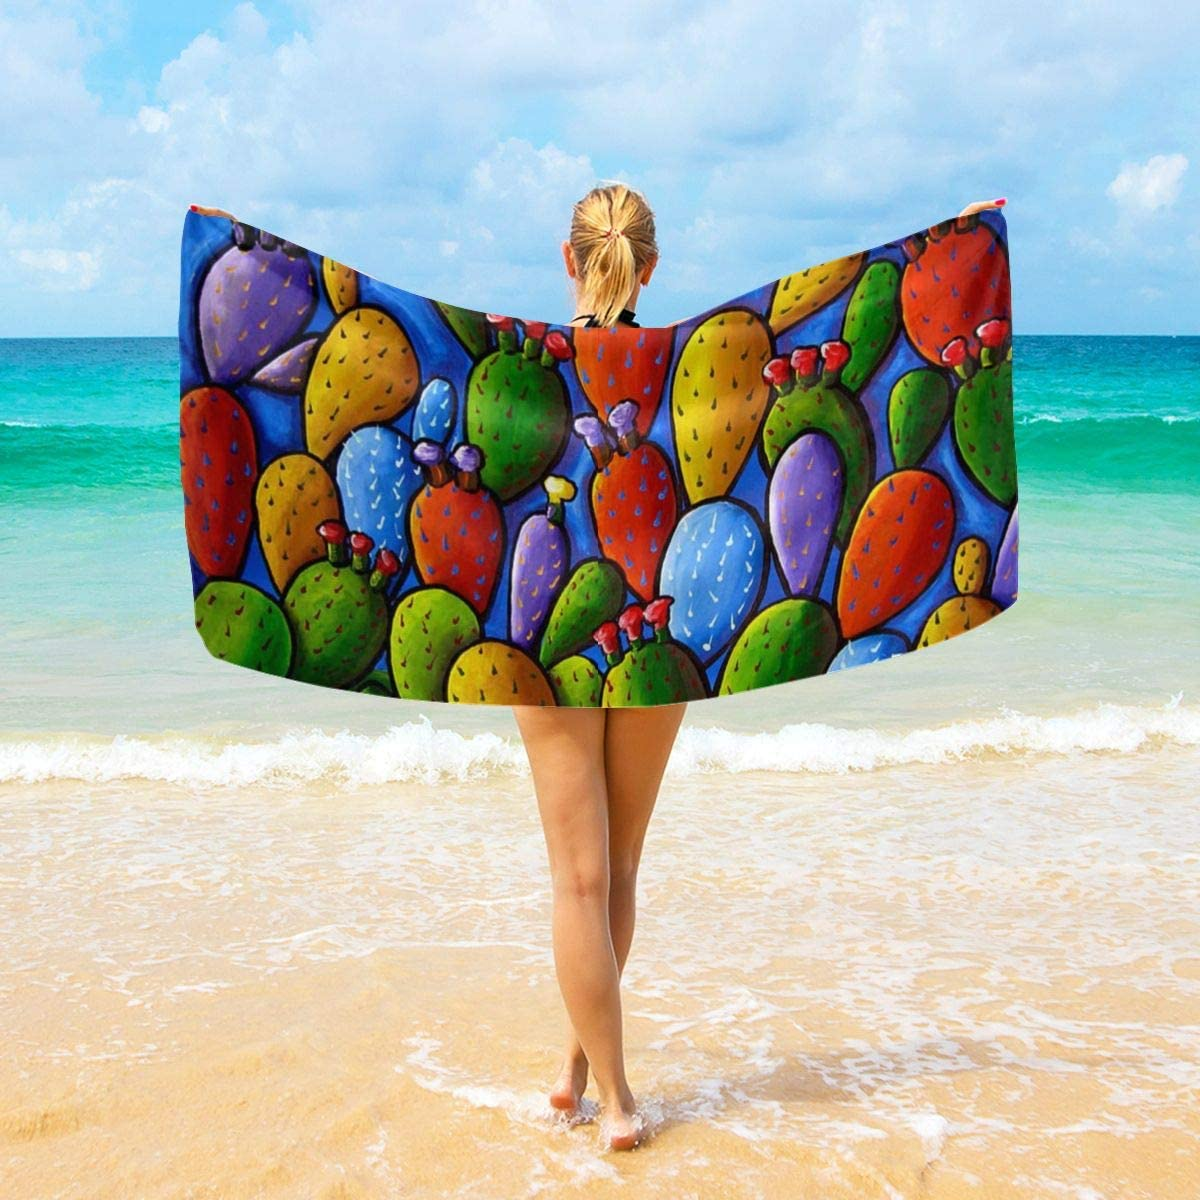 Befectar Wilder California Prickly Pear Colorful Cactus Towels for Bathroom Hotel Gym and Spa Beach Blankets for Couch (32x52 Inches 40x70 Inches)